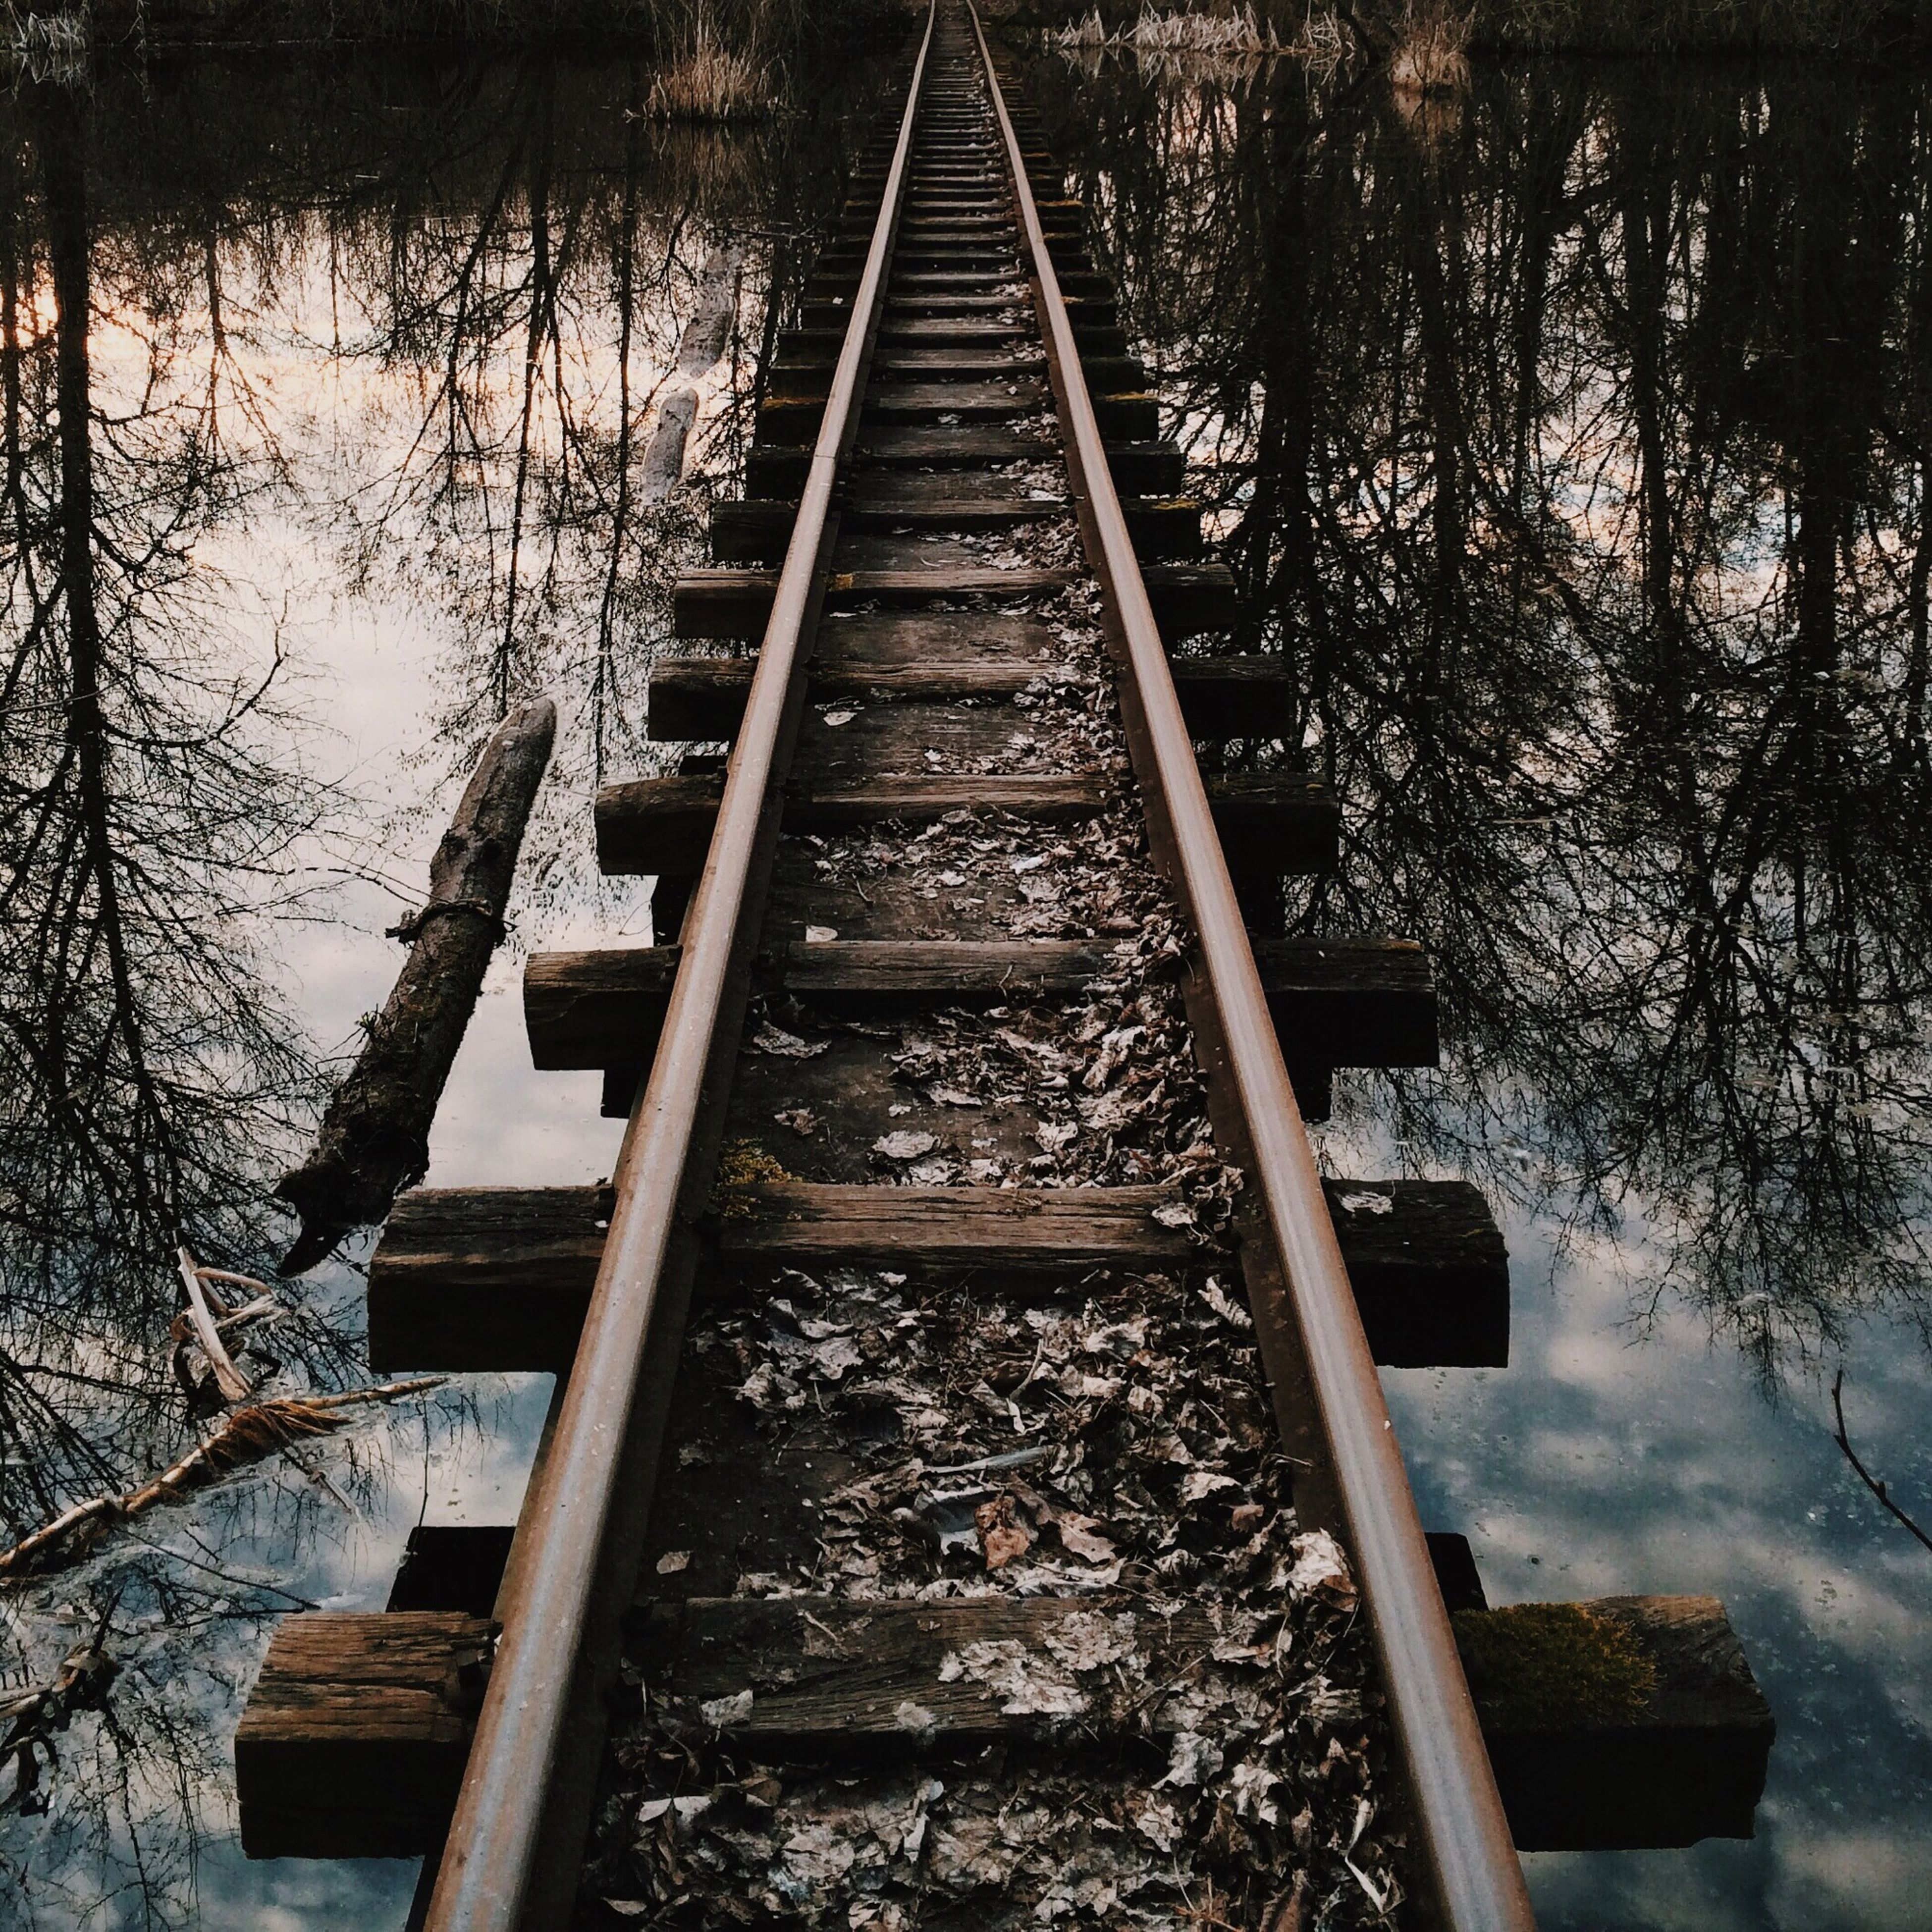 railroad track, transportation, rail transportation, water, connection, tree, high angle view, built structure, the way forward, diminishing perspective, metal, day, railing, bridge - man made structure, river, railway track, outdoors, architecture, footbridge, no people